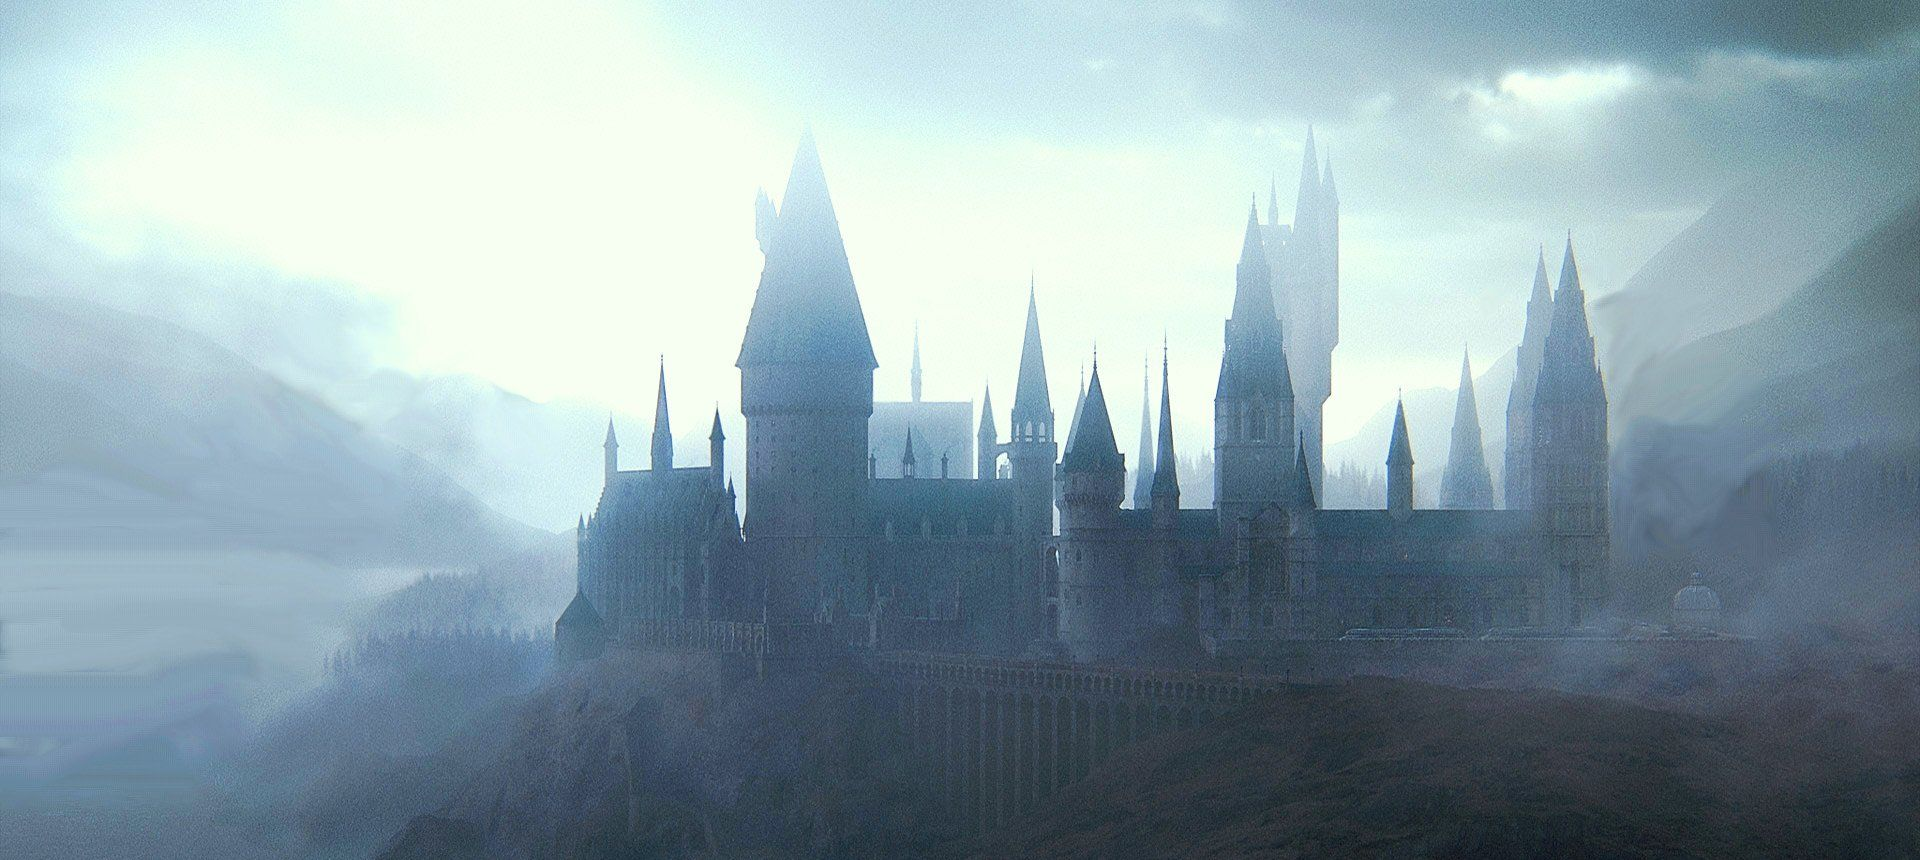 1920x860 What is your favorite Harry Potter wallpaper? : harrypotter